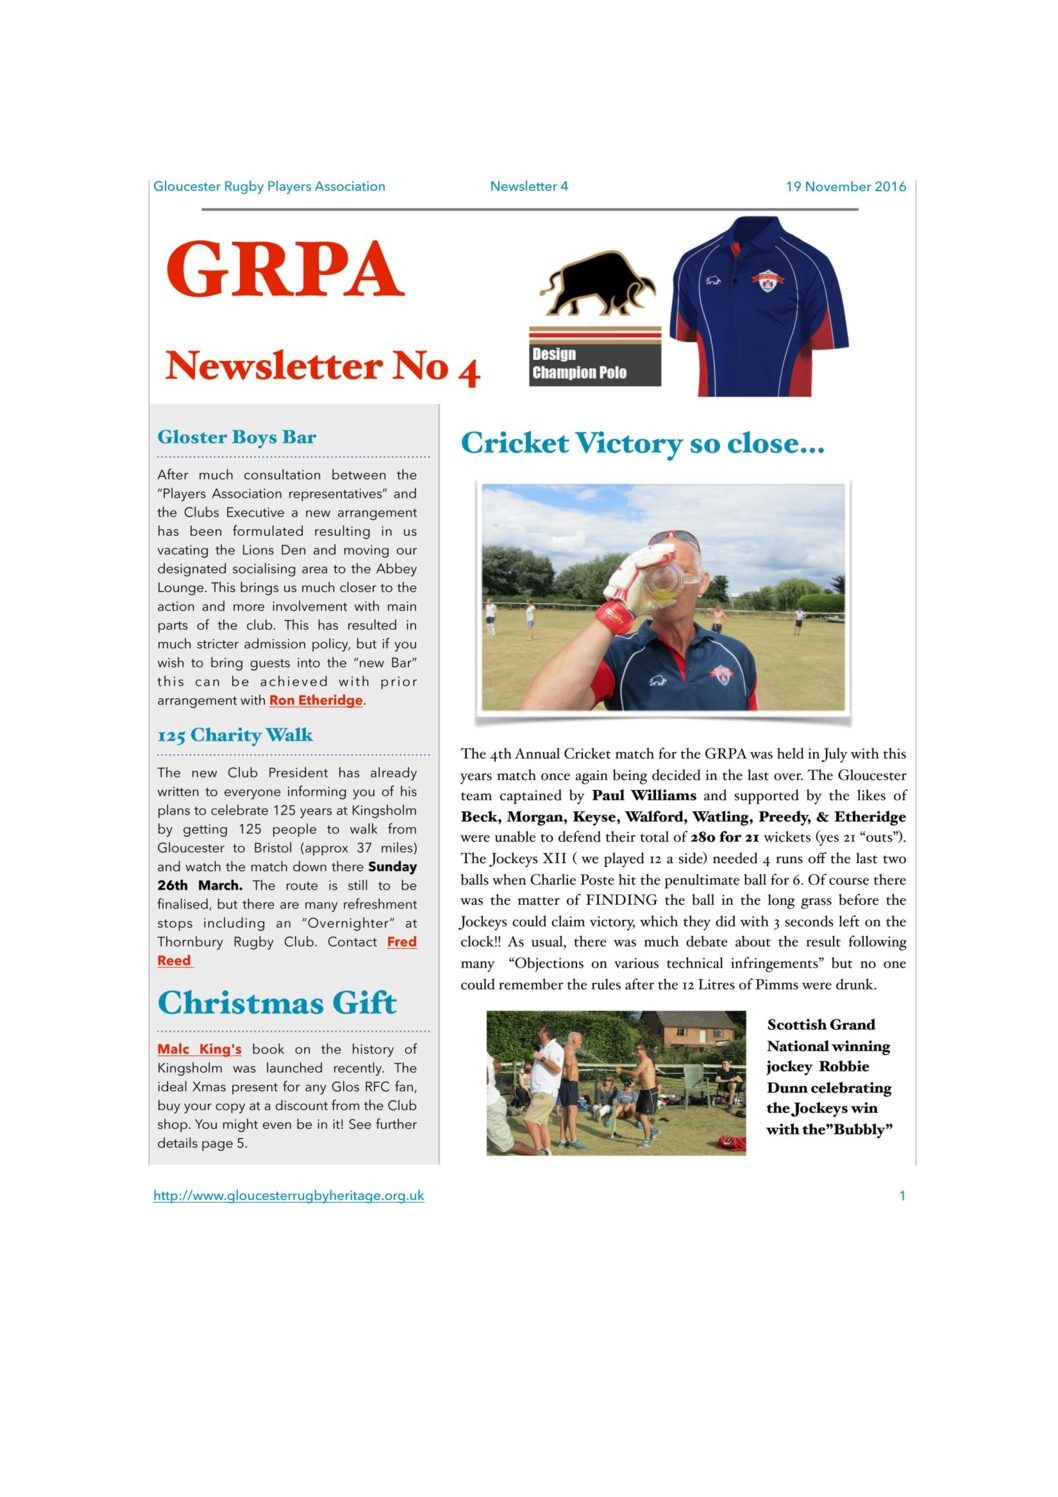 GRPA Newsletters